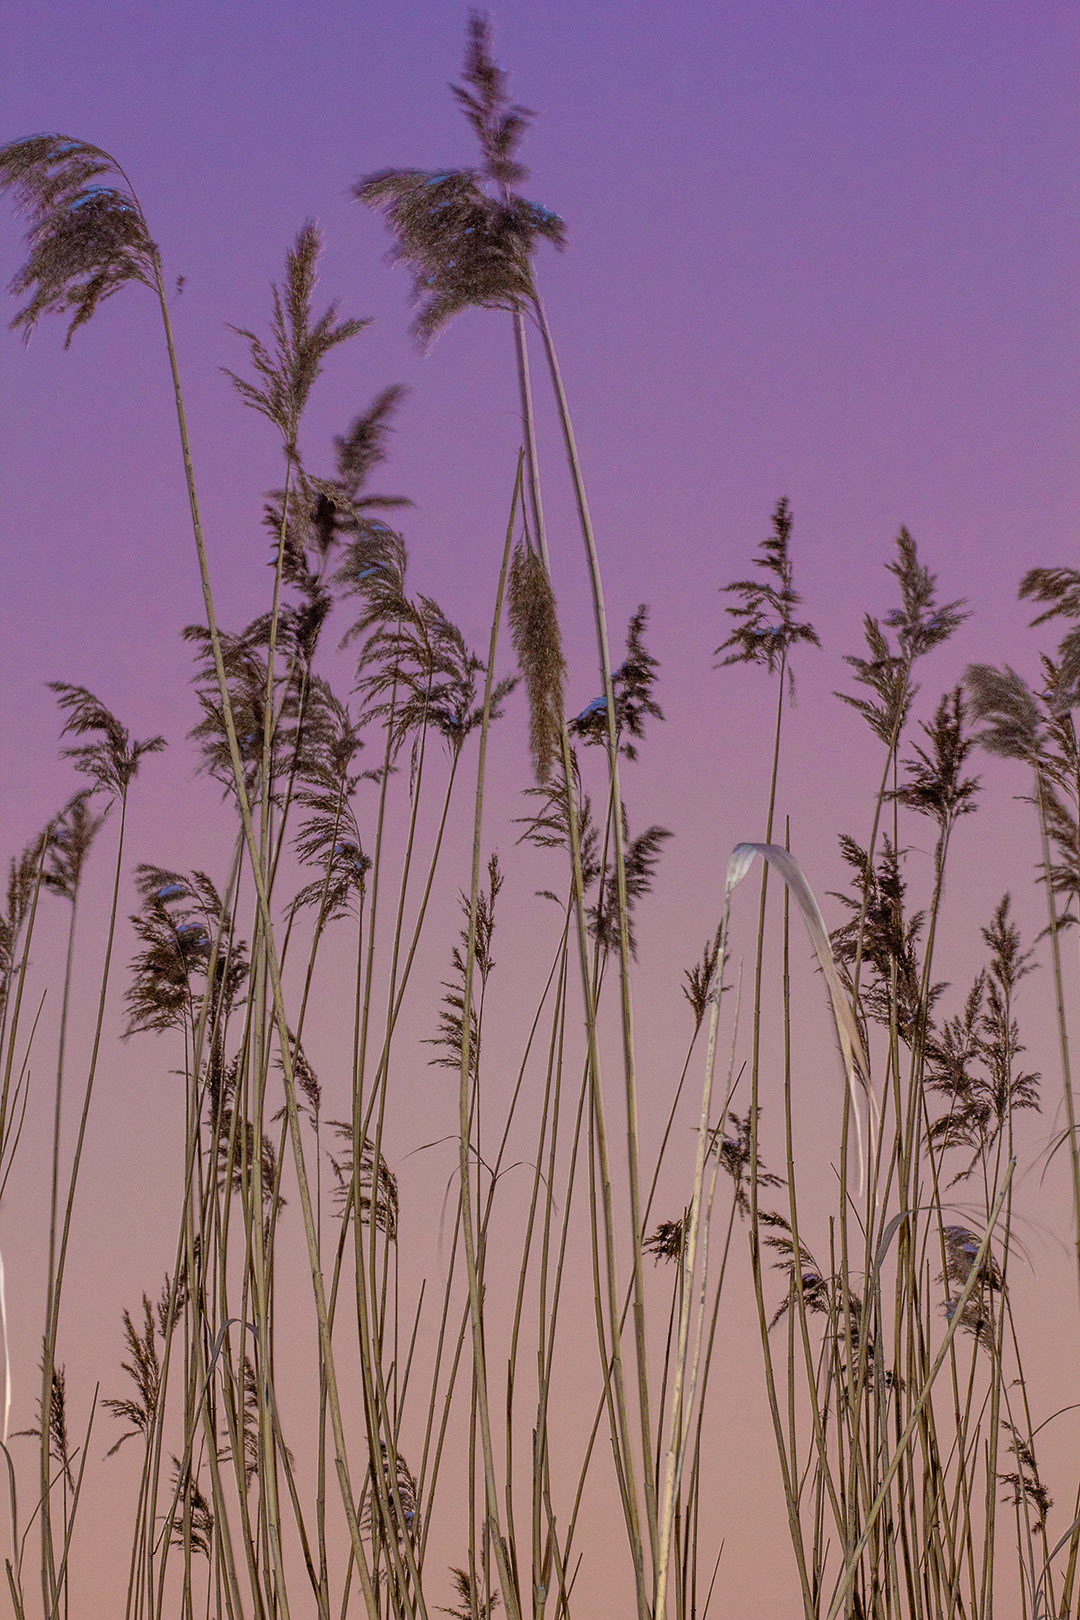 Reeds at dusk lit by flash in Vienna by Ken Marten